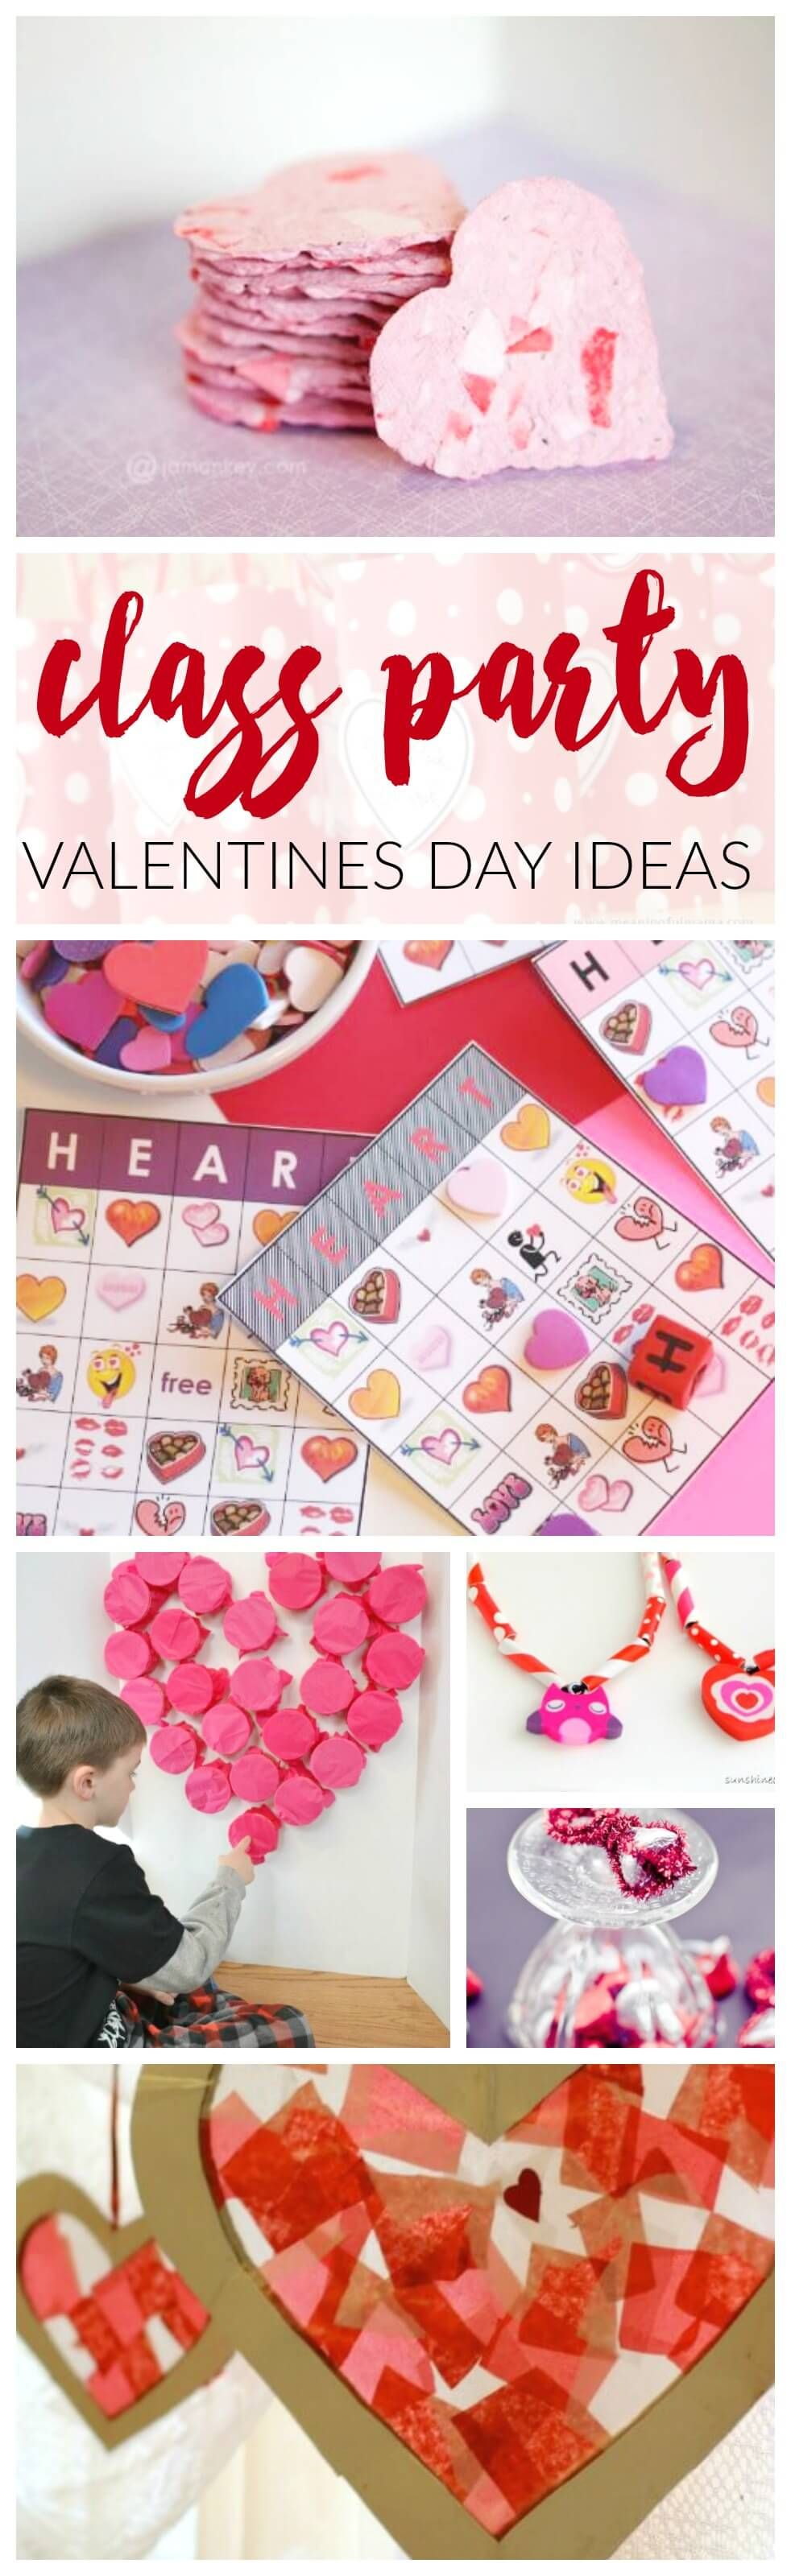 Class Party Ideas For Valentine S Day How To Throw A Great Party